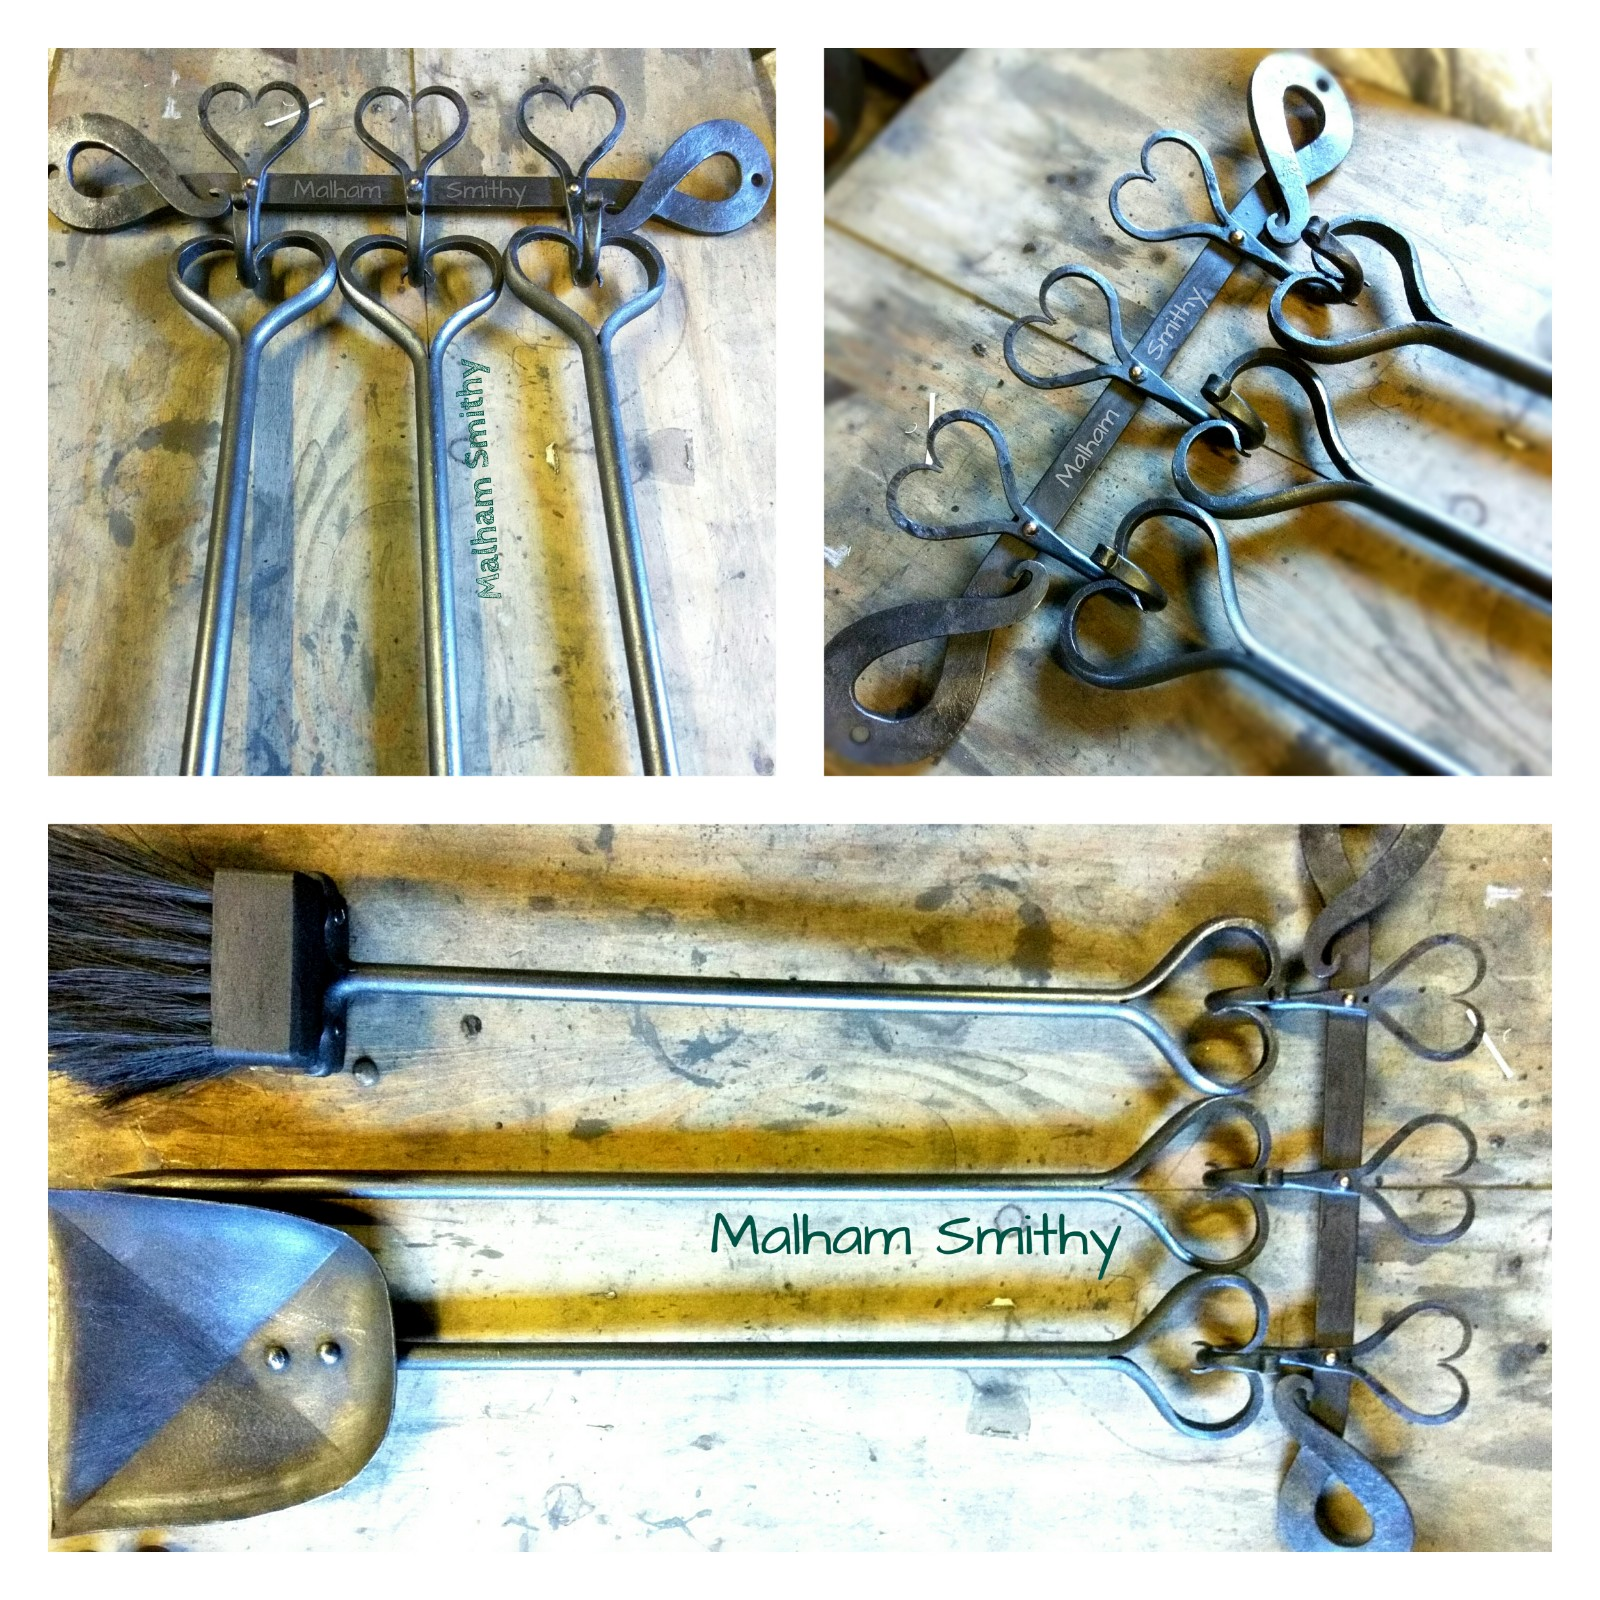 Heart design fire tools on a heart hook wall rack from the Malham Smithy